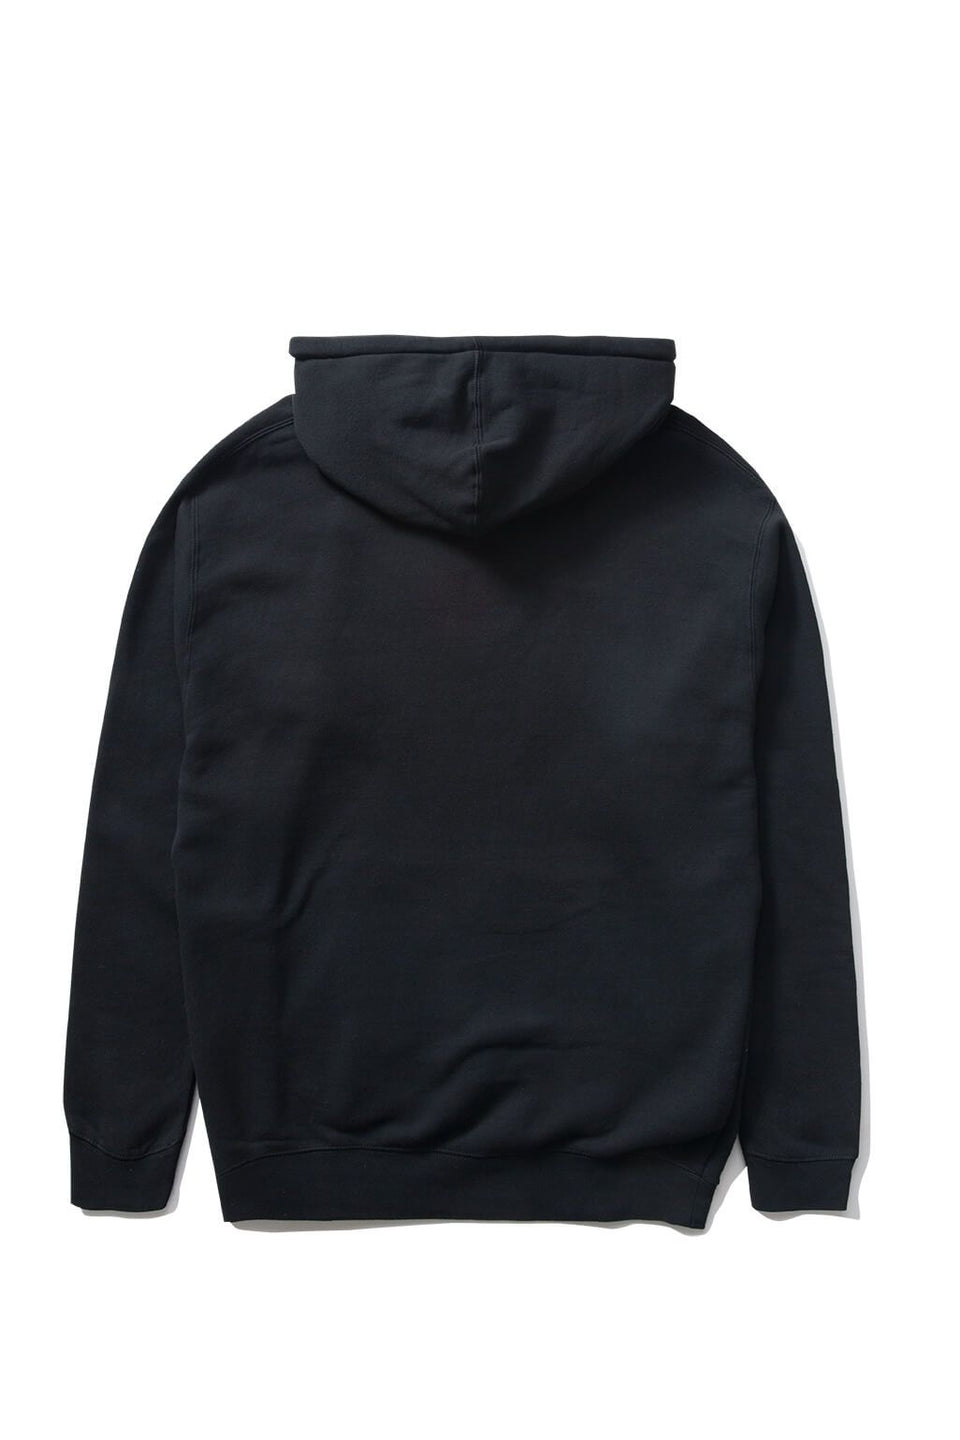 The Hundreds Forever Bar Pullover Hoodie Black Back